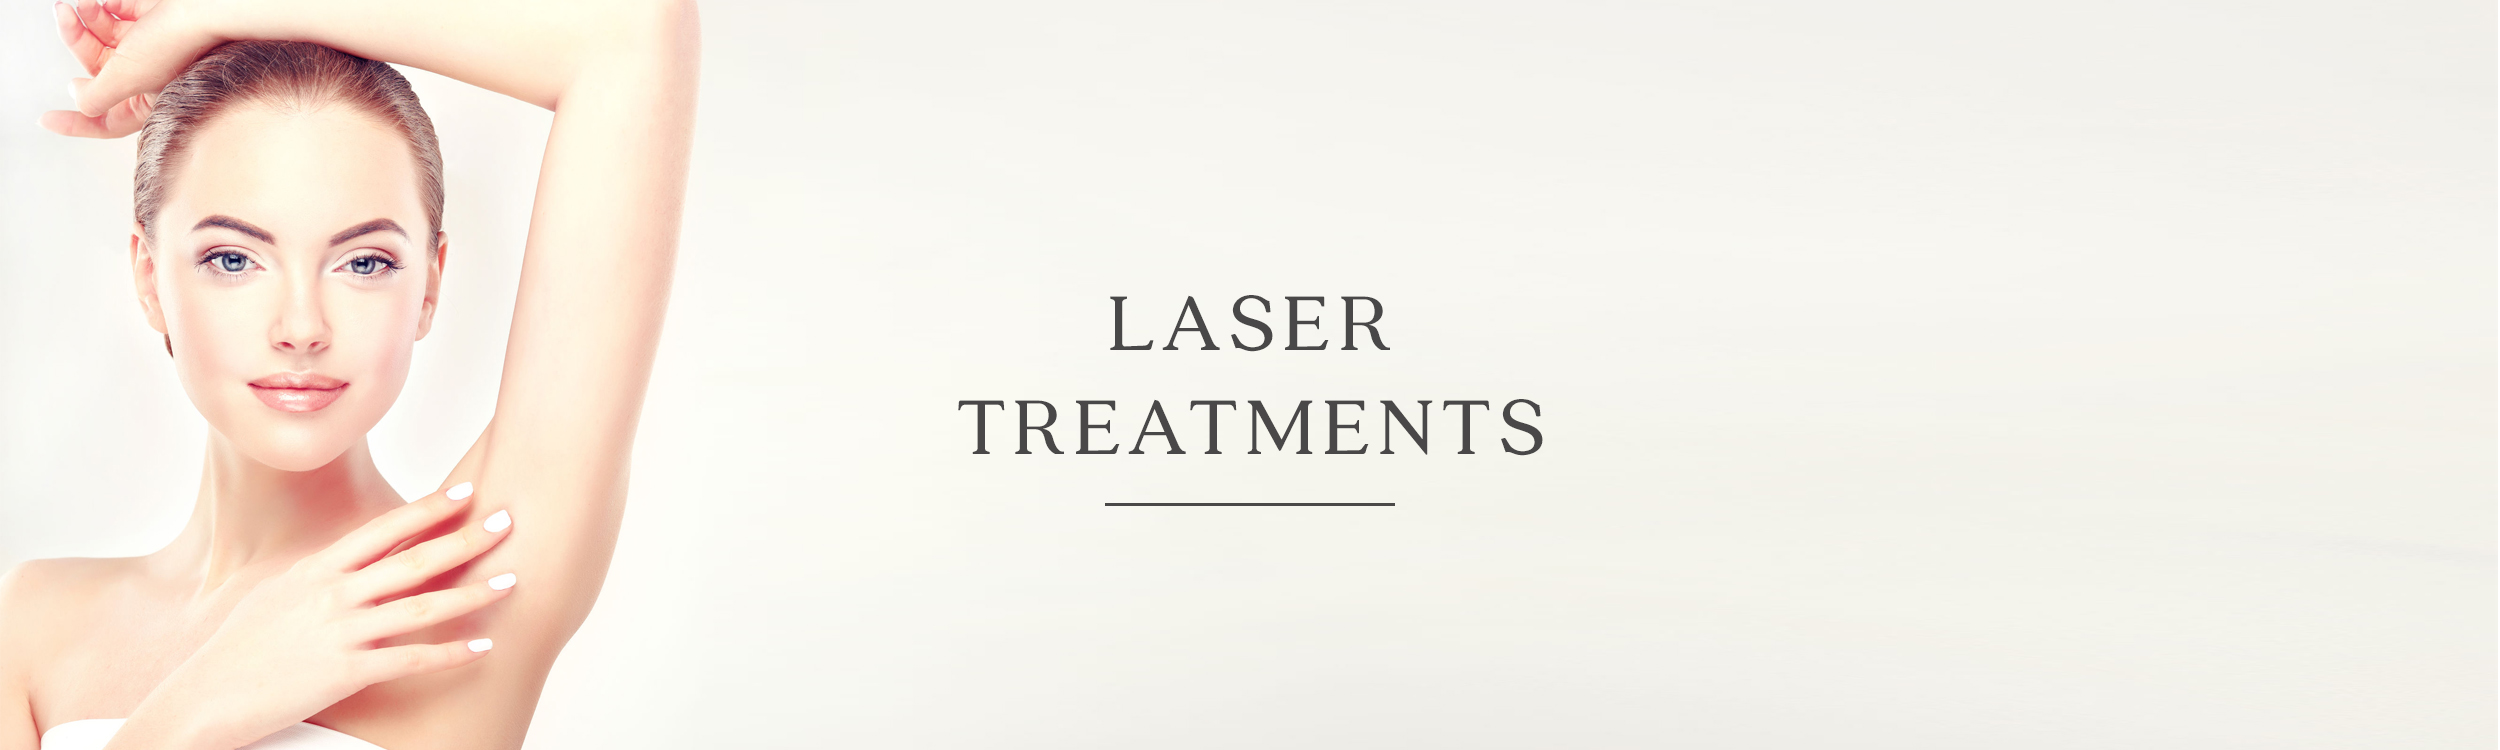 The Clinic for Medical Aesthetics - Laser Treatments Banner.jpg